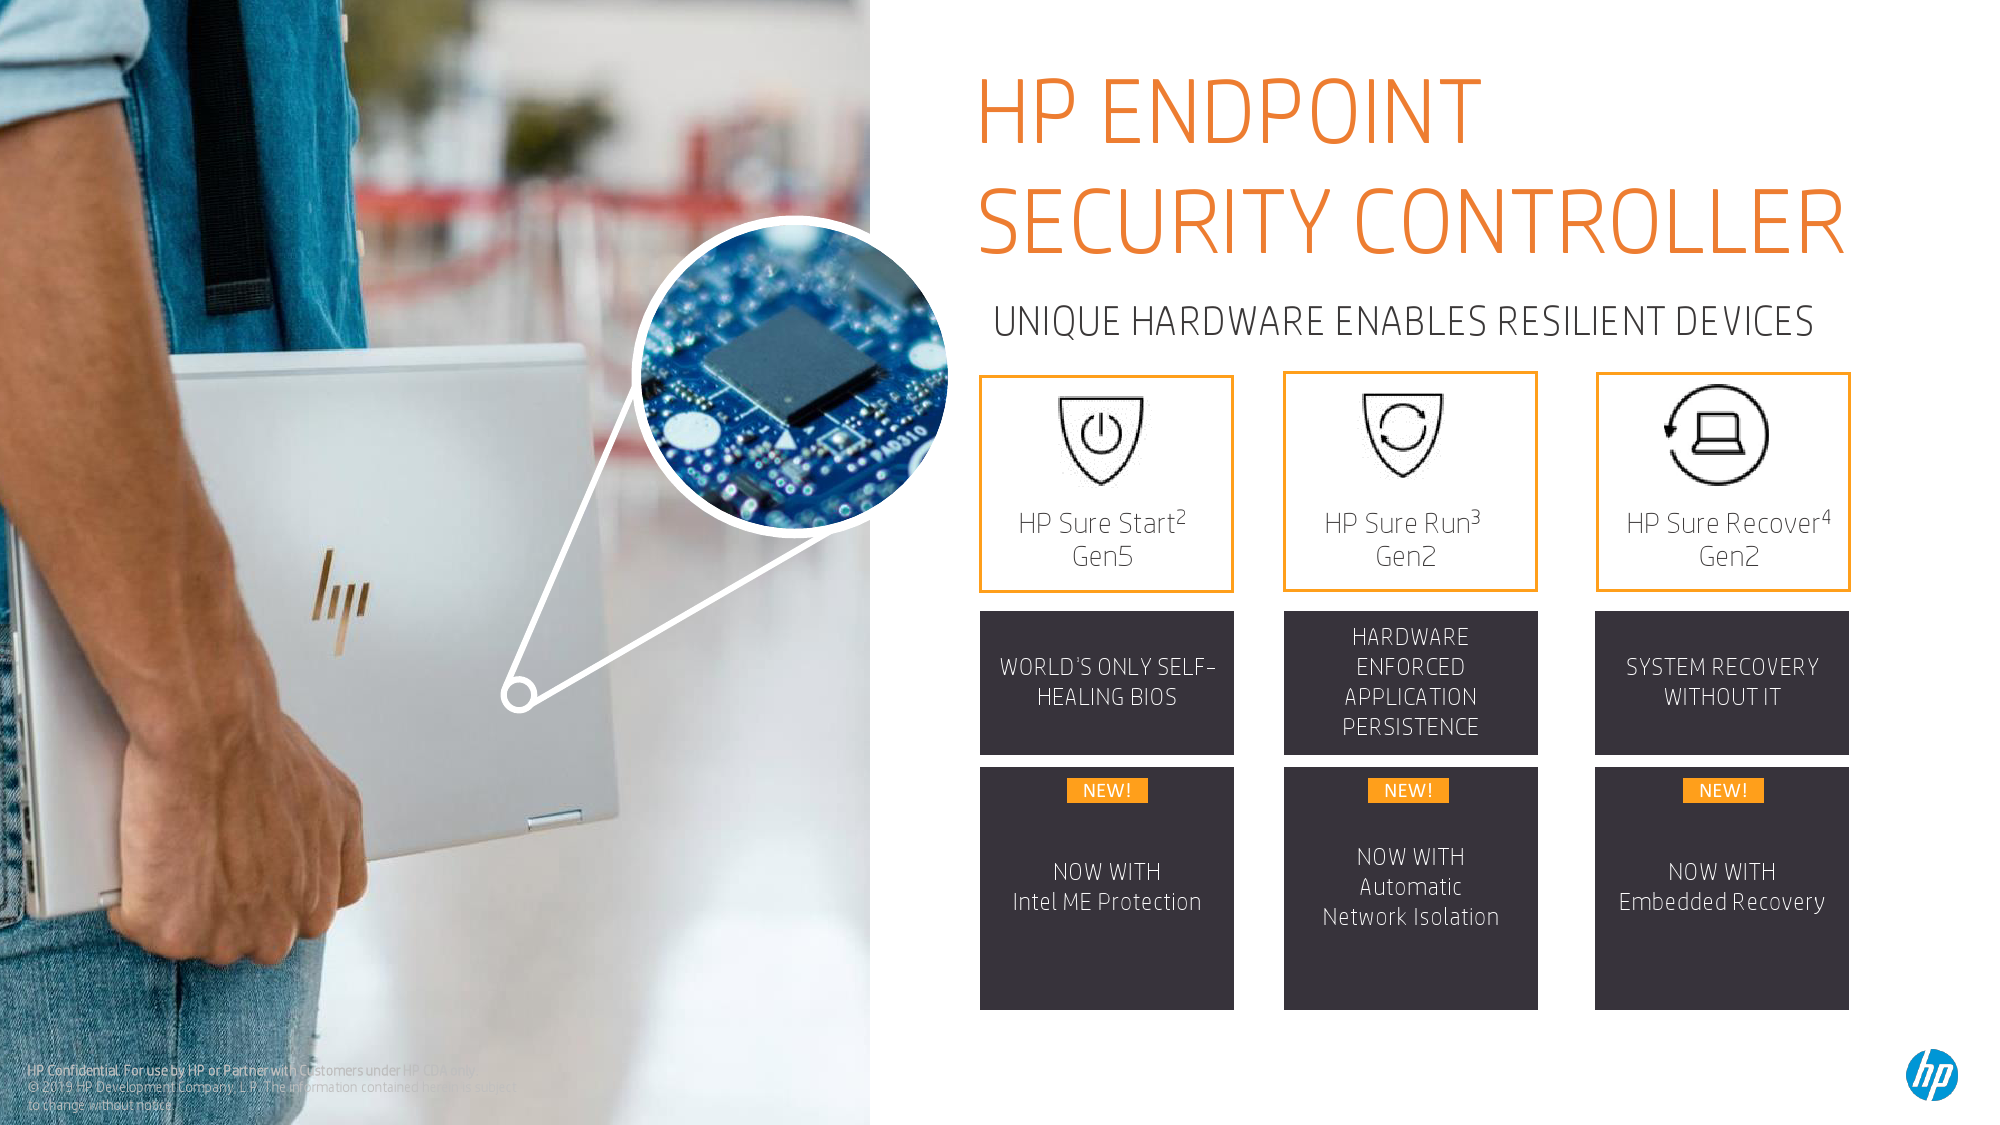 HP's Endpoint Security Controller: More Details About A New